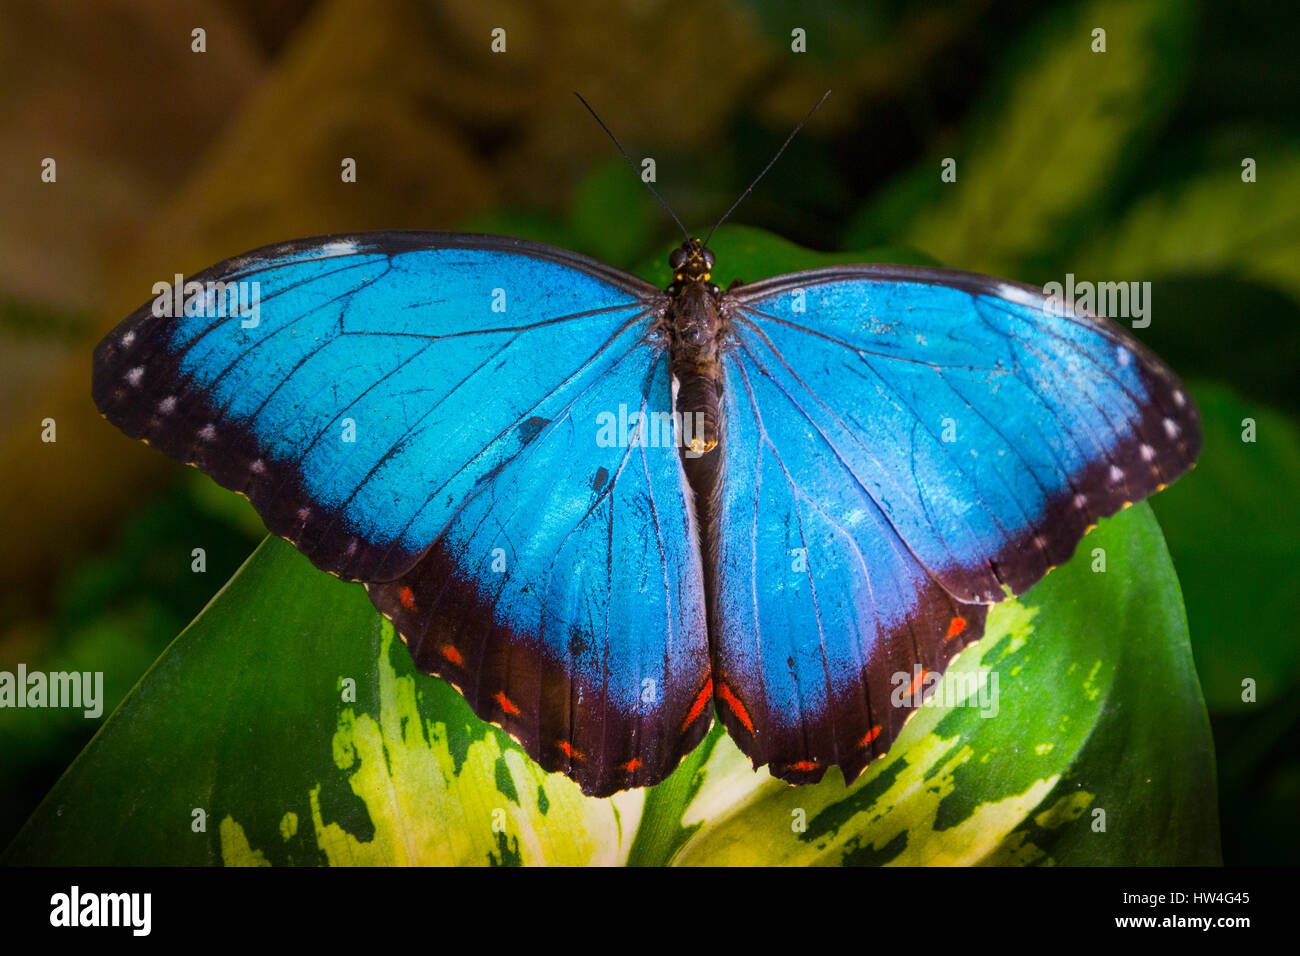 blue morpho butterfly relaxing on a leaf. Benalmadena Butterfly Park, Costa del Sol, Malaga, Spain Europe - Stock Image